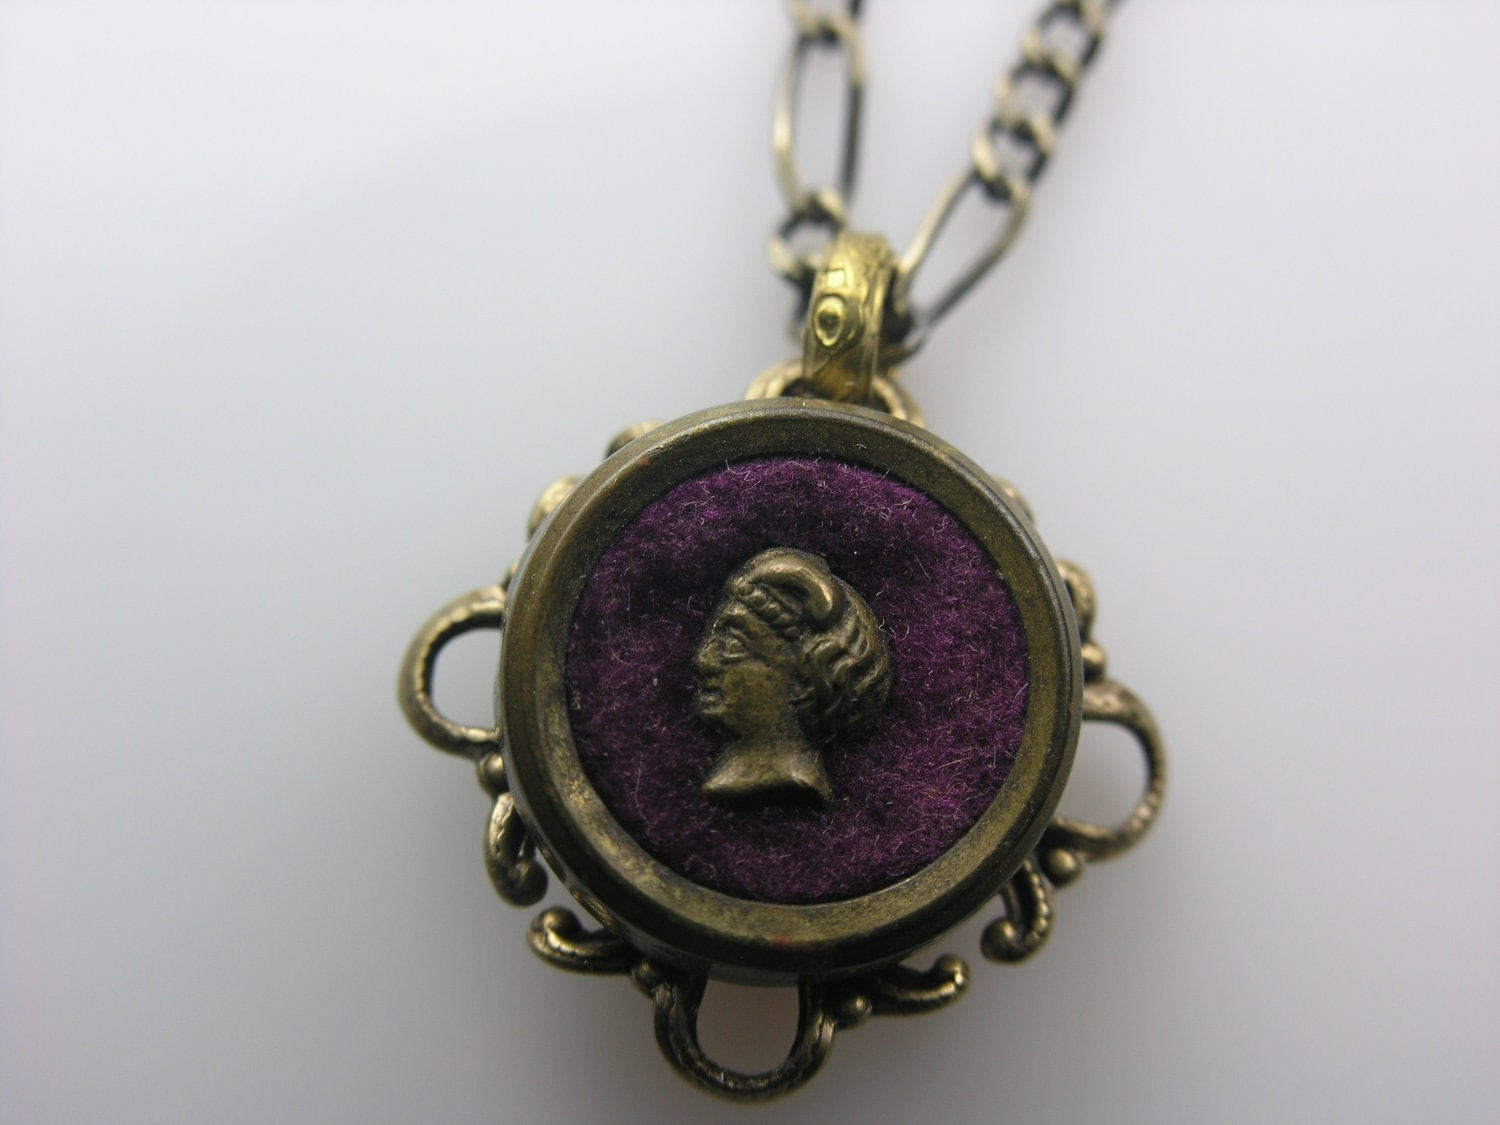 Antique Victorian Perfume Button Necklace (Purple Silhouette) - LiTelle